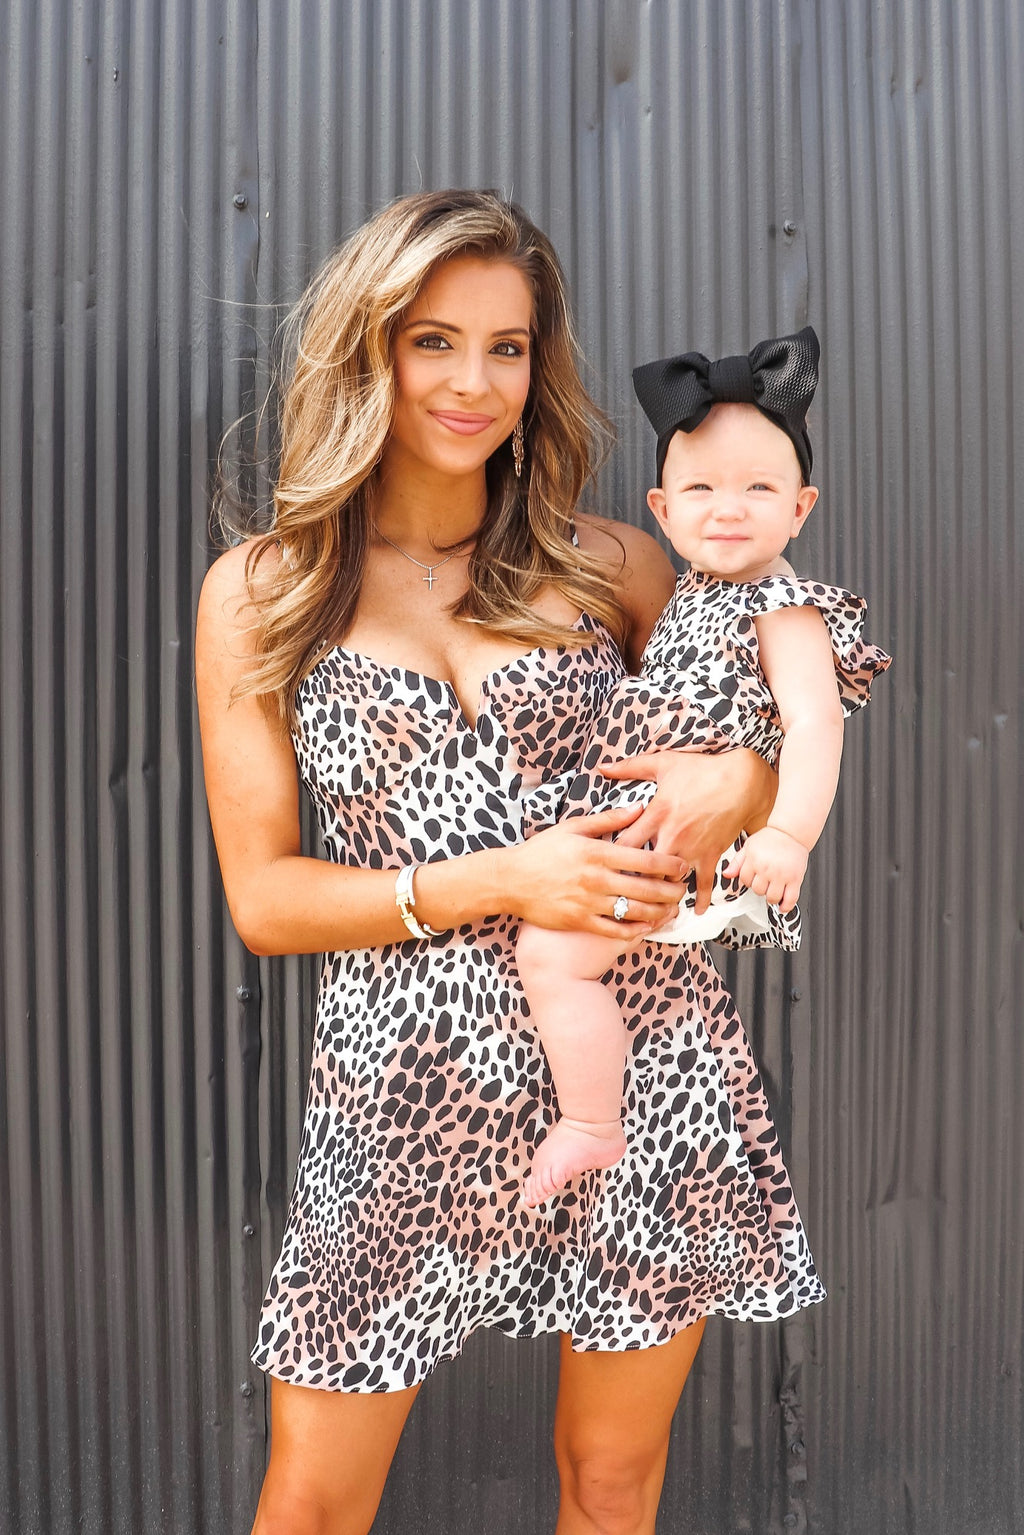 Shiloh Cheetah Dress